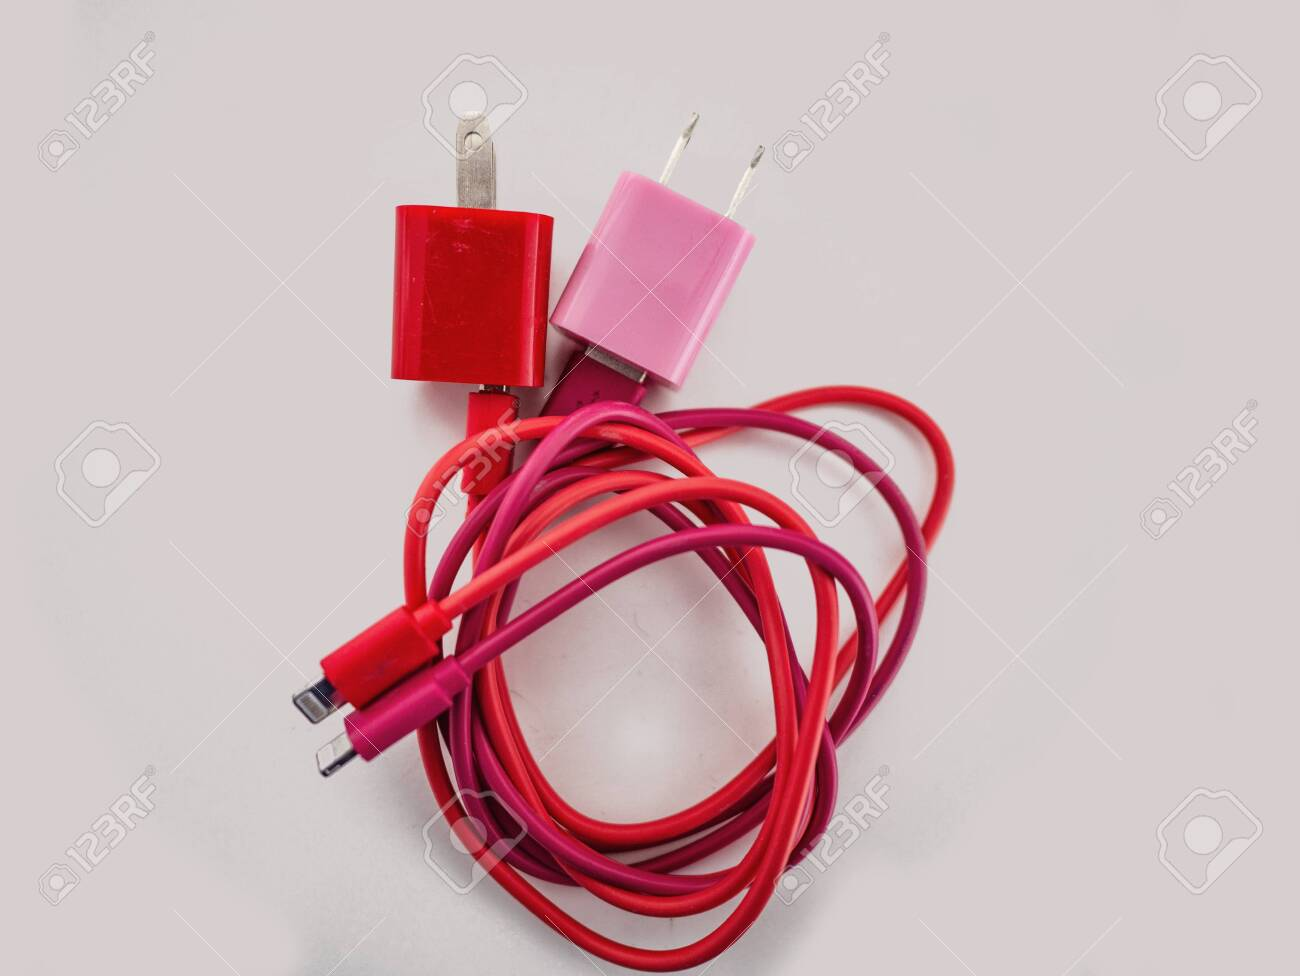 Pink And Red Color Mobile Charger On White Backgroundisolated Wallpaper